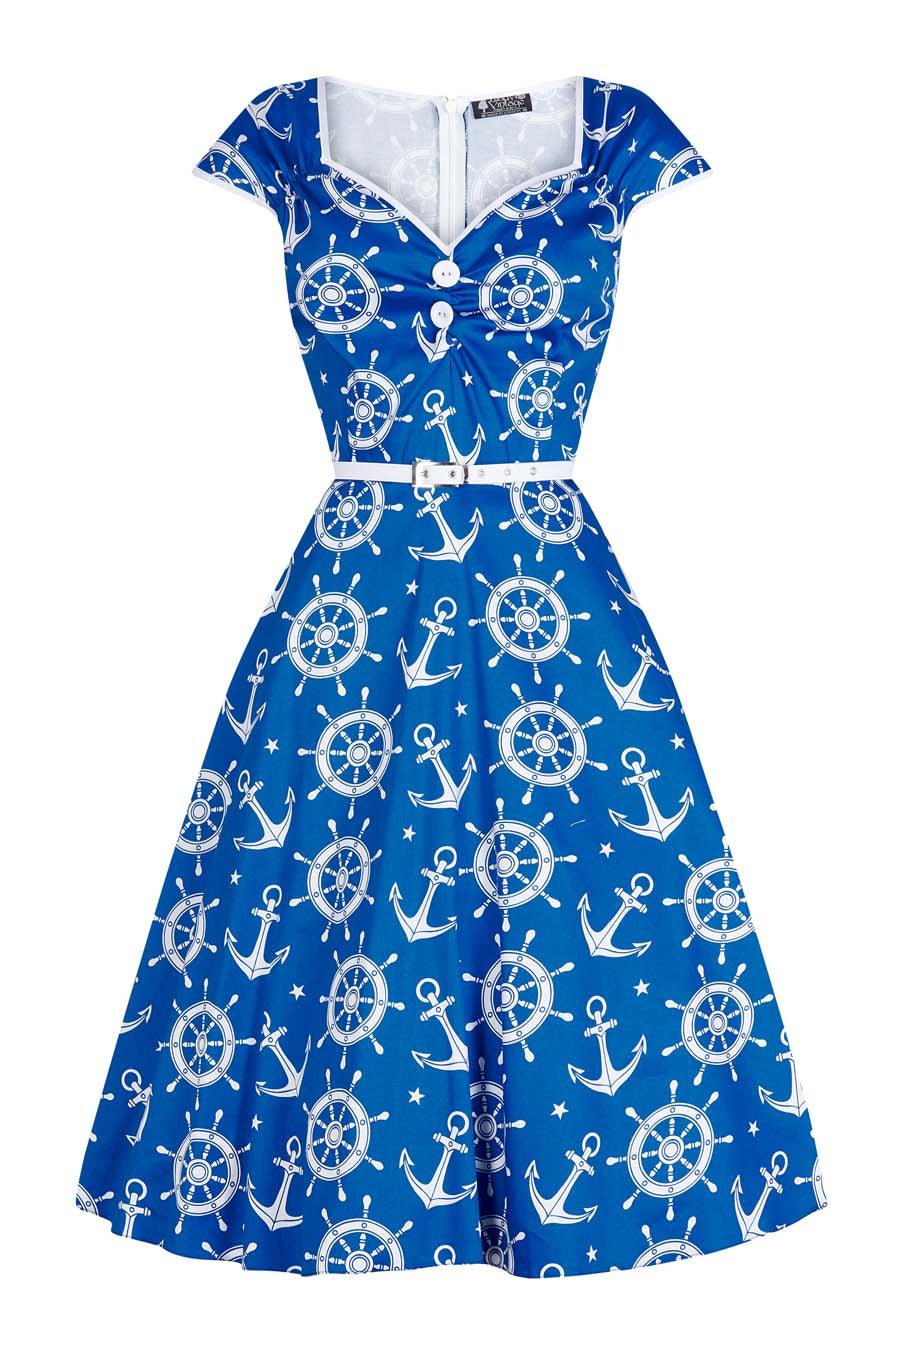 Nautical Print Isabella Dress